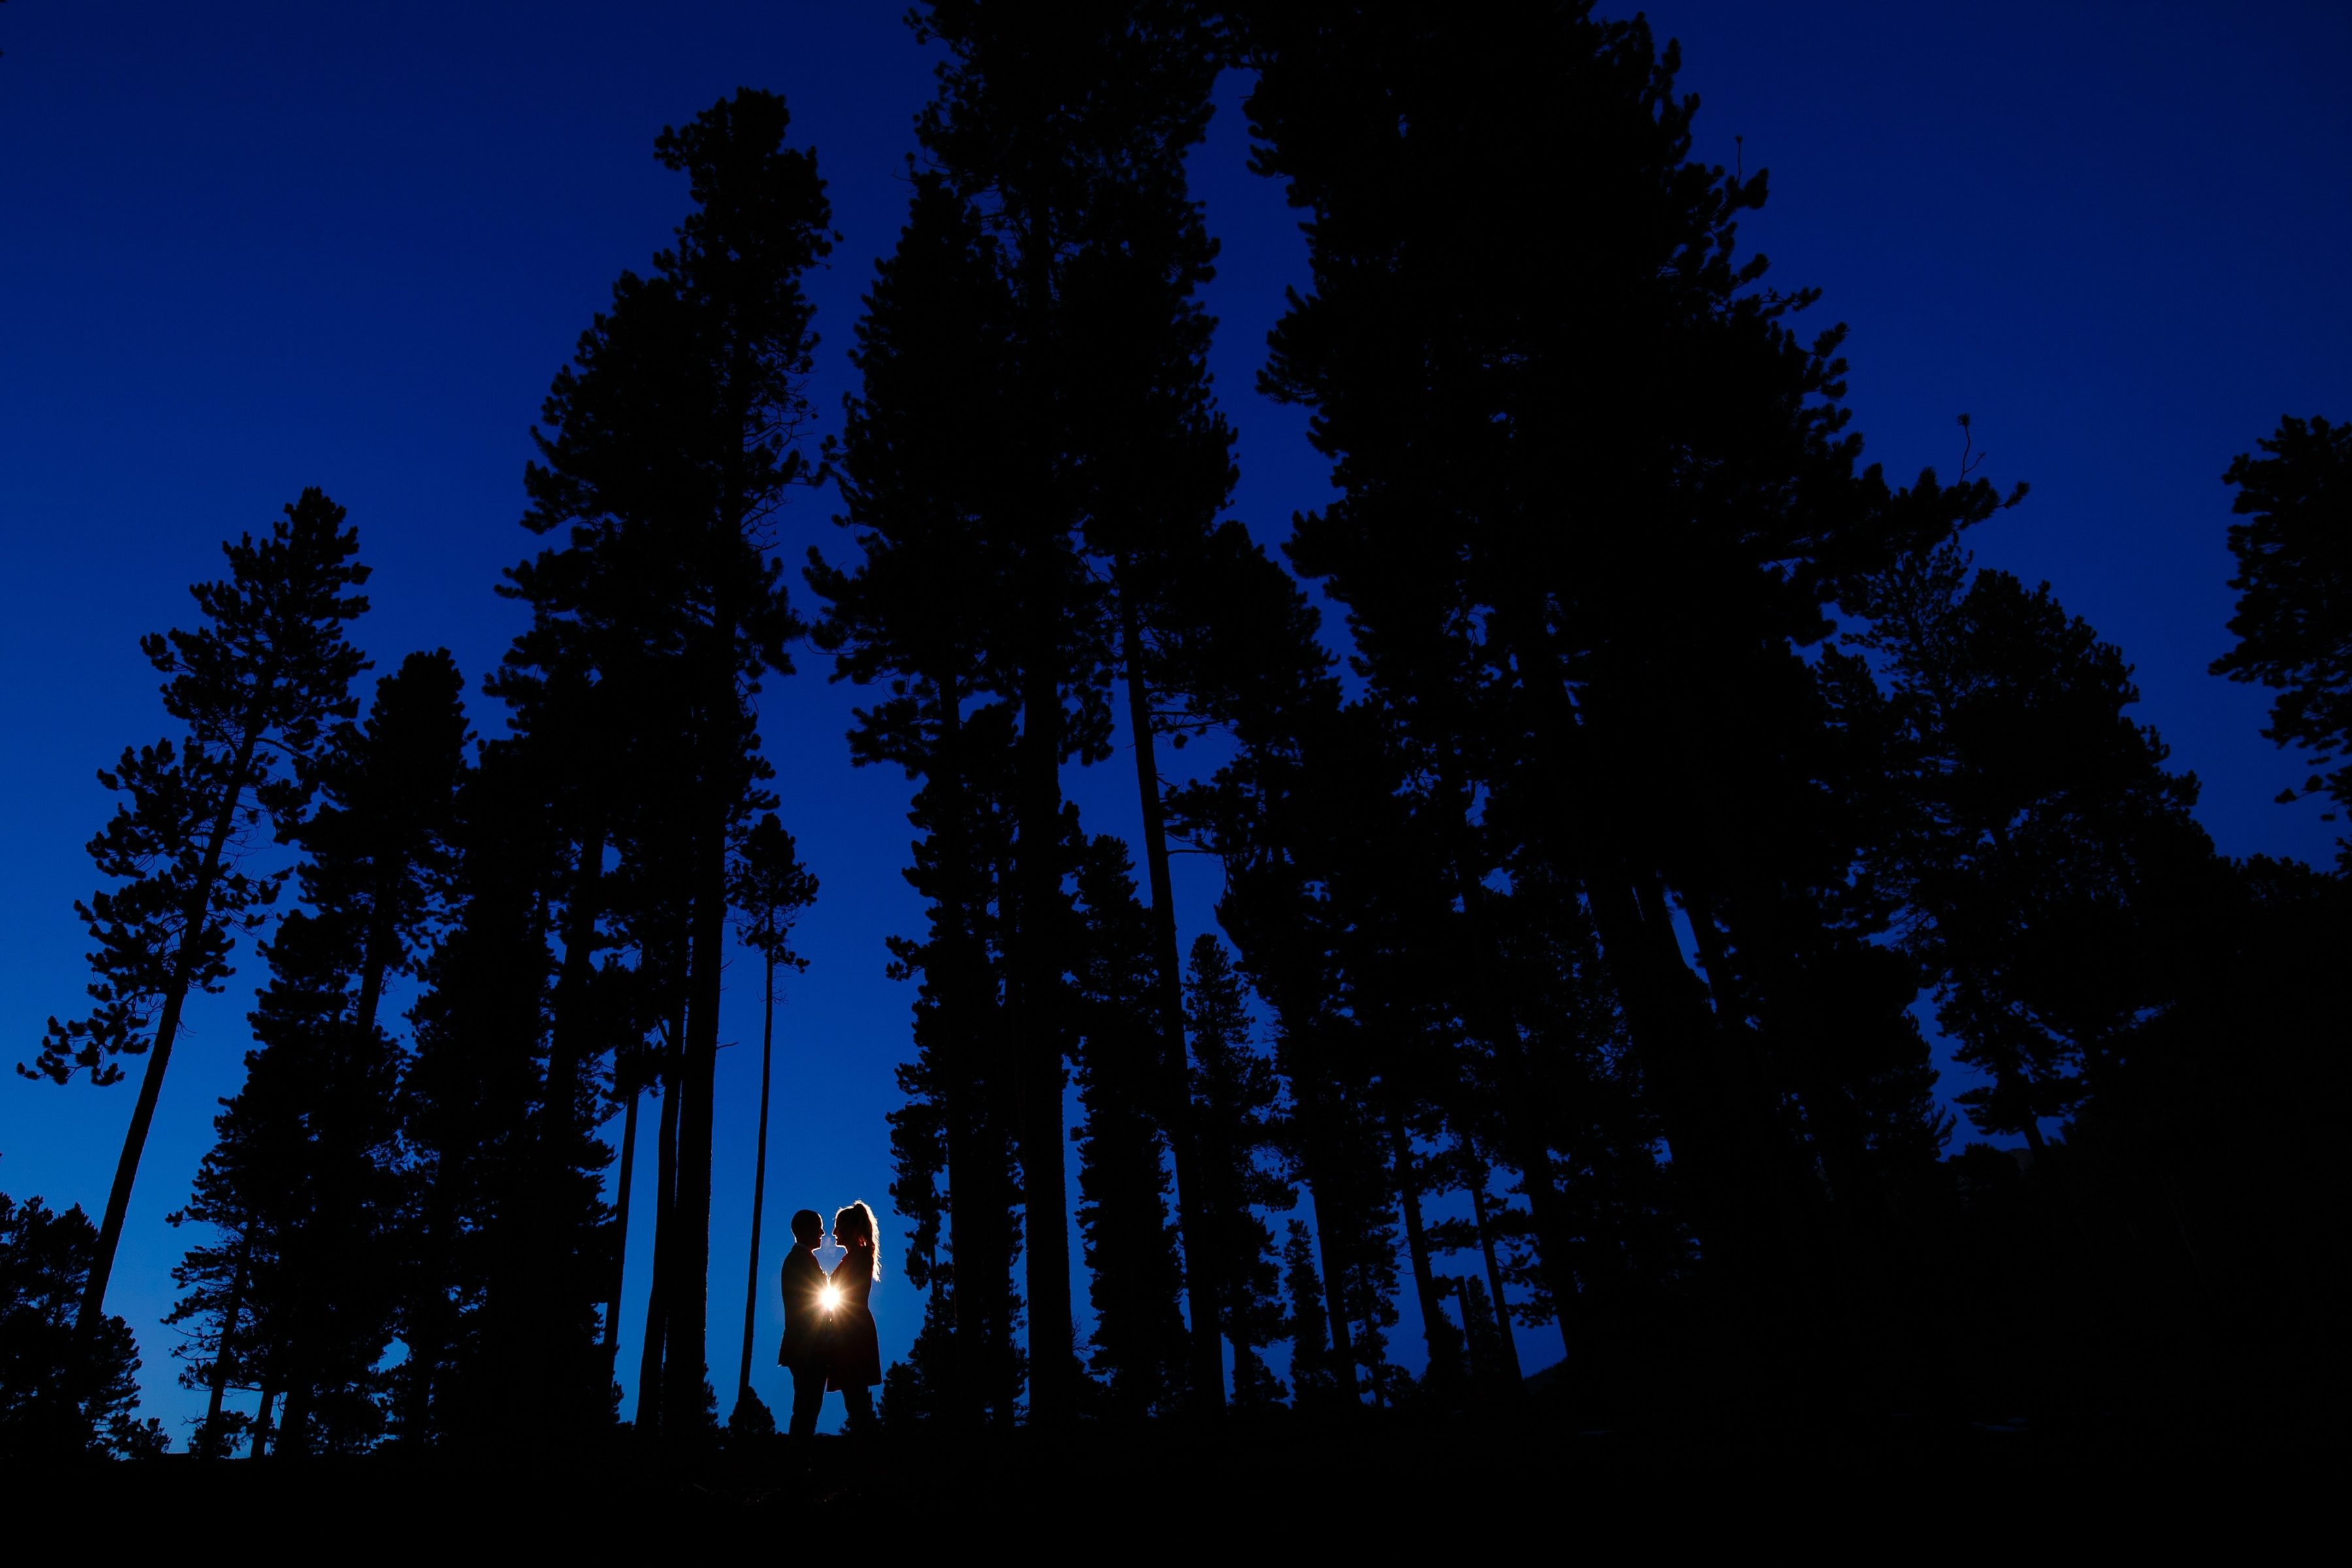 Adam and Paige are illuminated at night between pine trees  during their Golden Gate Canyon State Park engagement